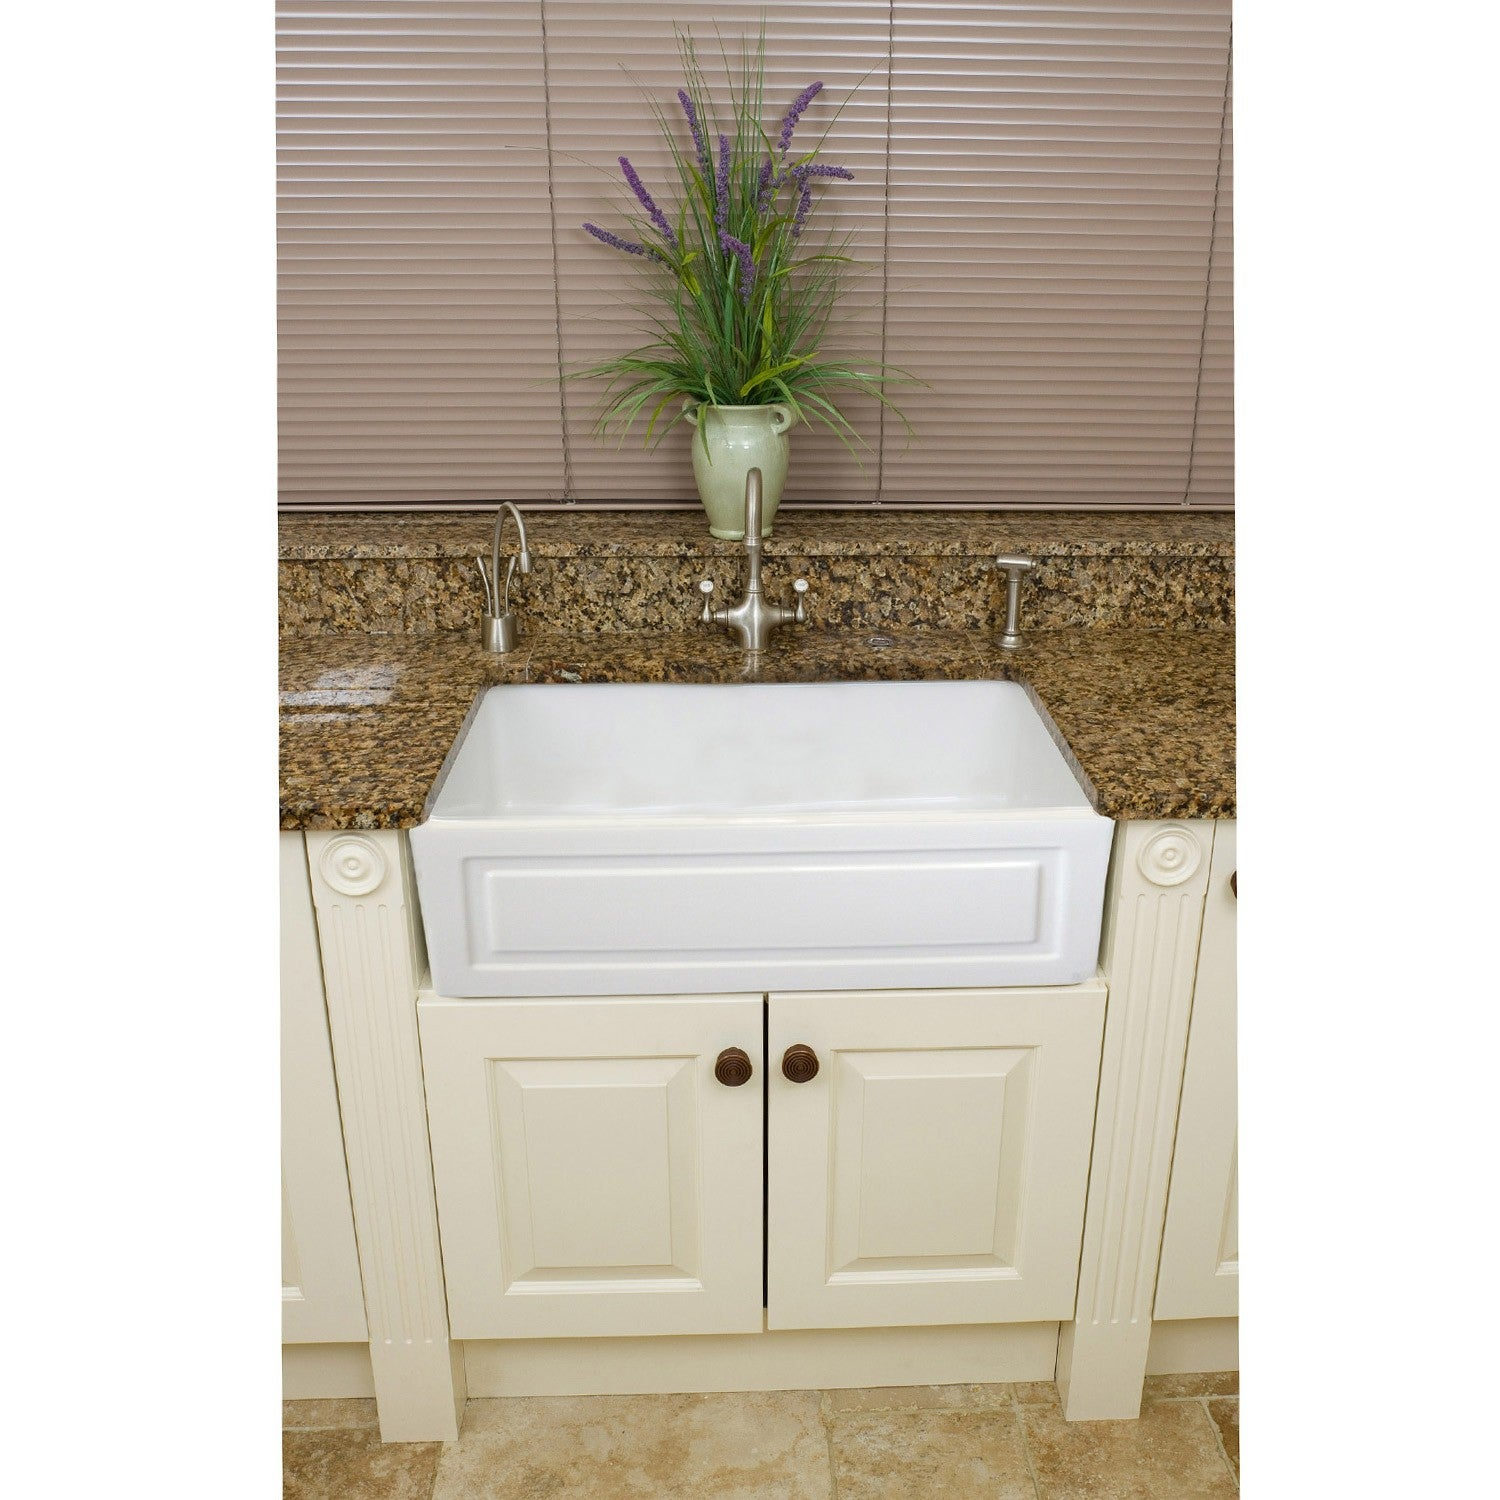 Fne Fixtures Fireclay French 29-inch White Farmhouse Kitchen Sink ...